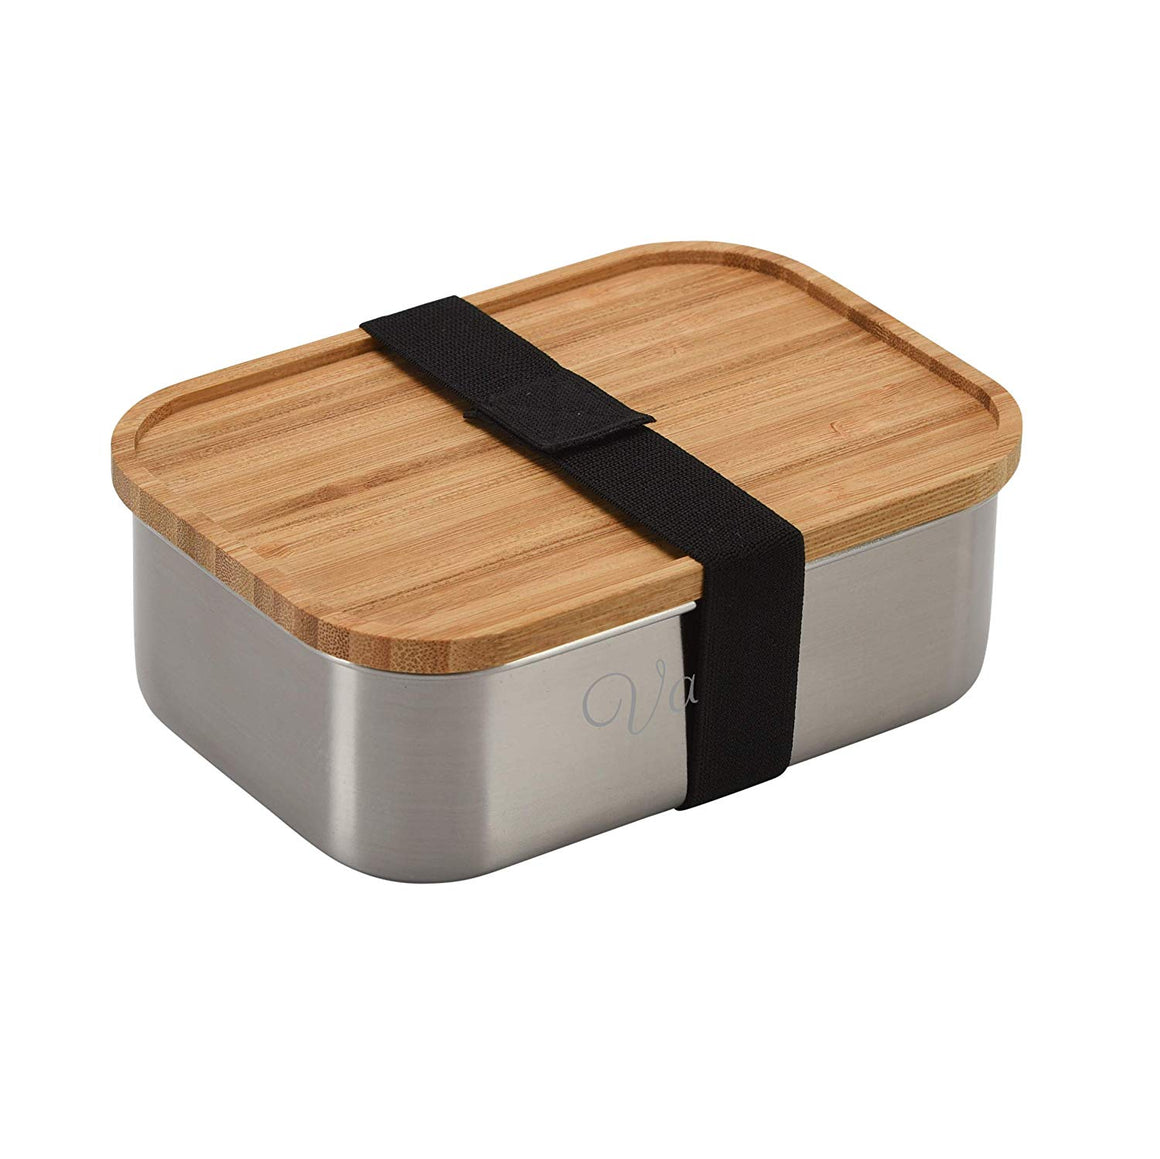 Vanli's Stainless-Steel Bento Lunch Box For Kids With Real Brown Bamboo Lid